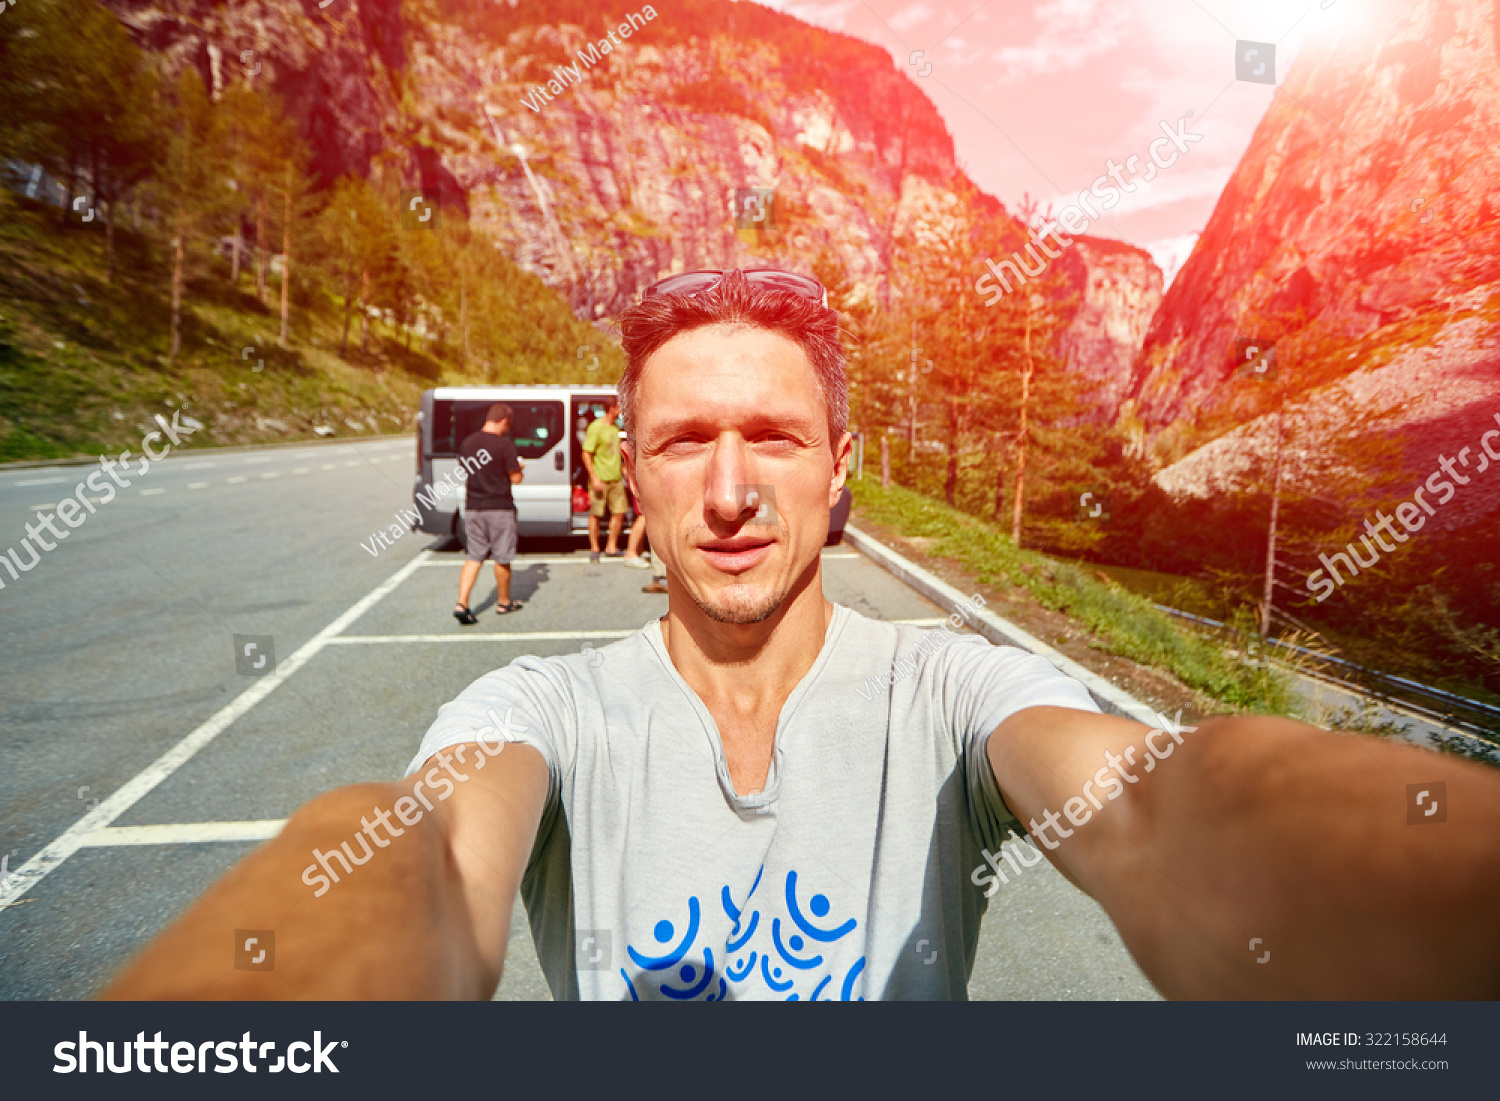 young  man make selfie on the morning mountains background. Man dressed in a white t-shirt and white sunglasses #322158644